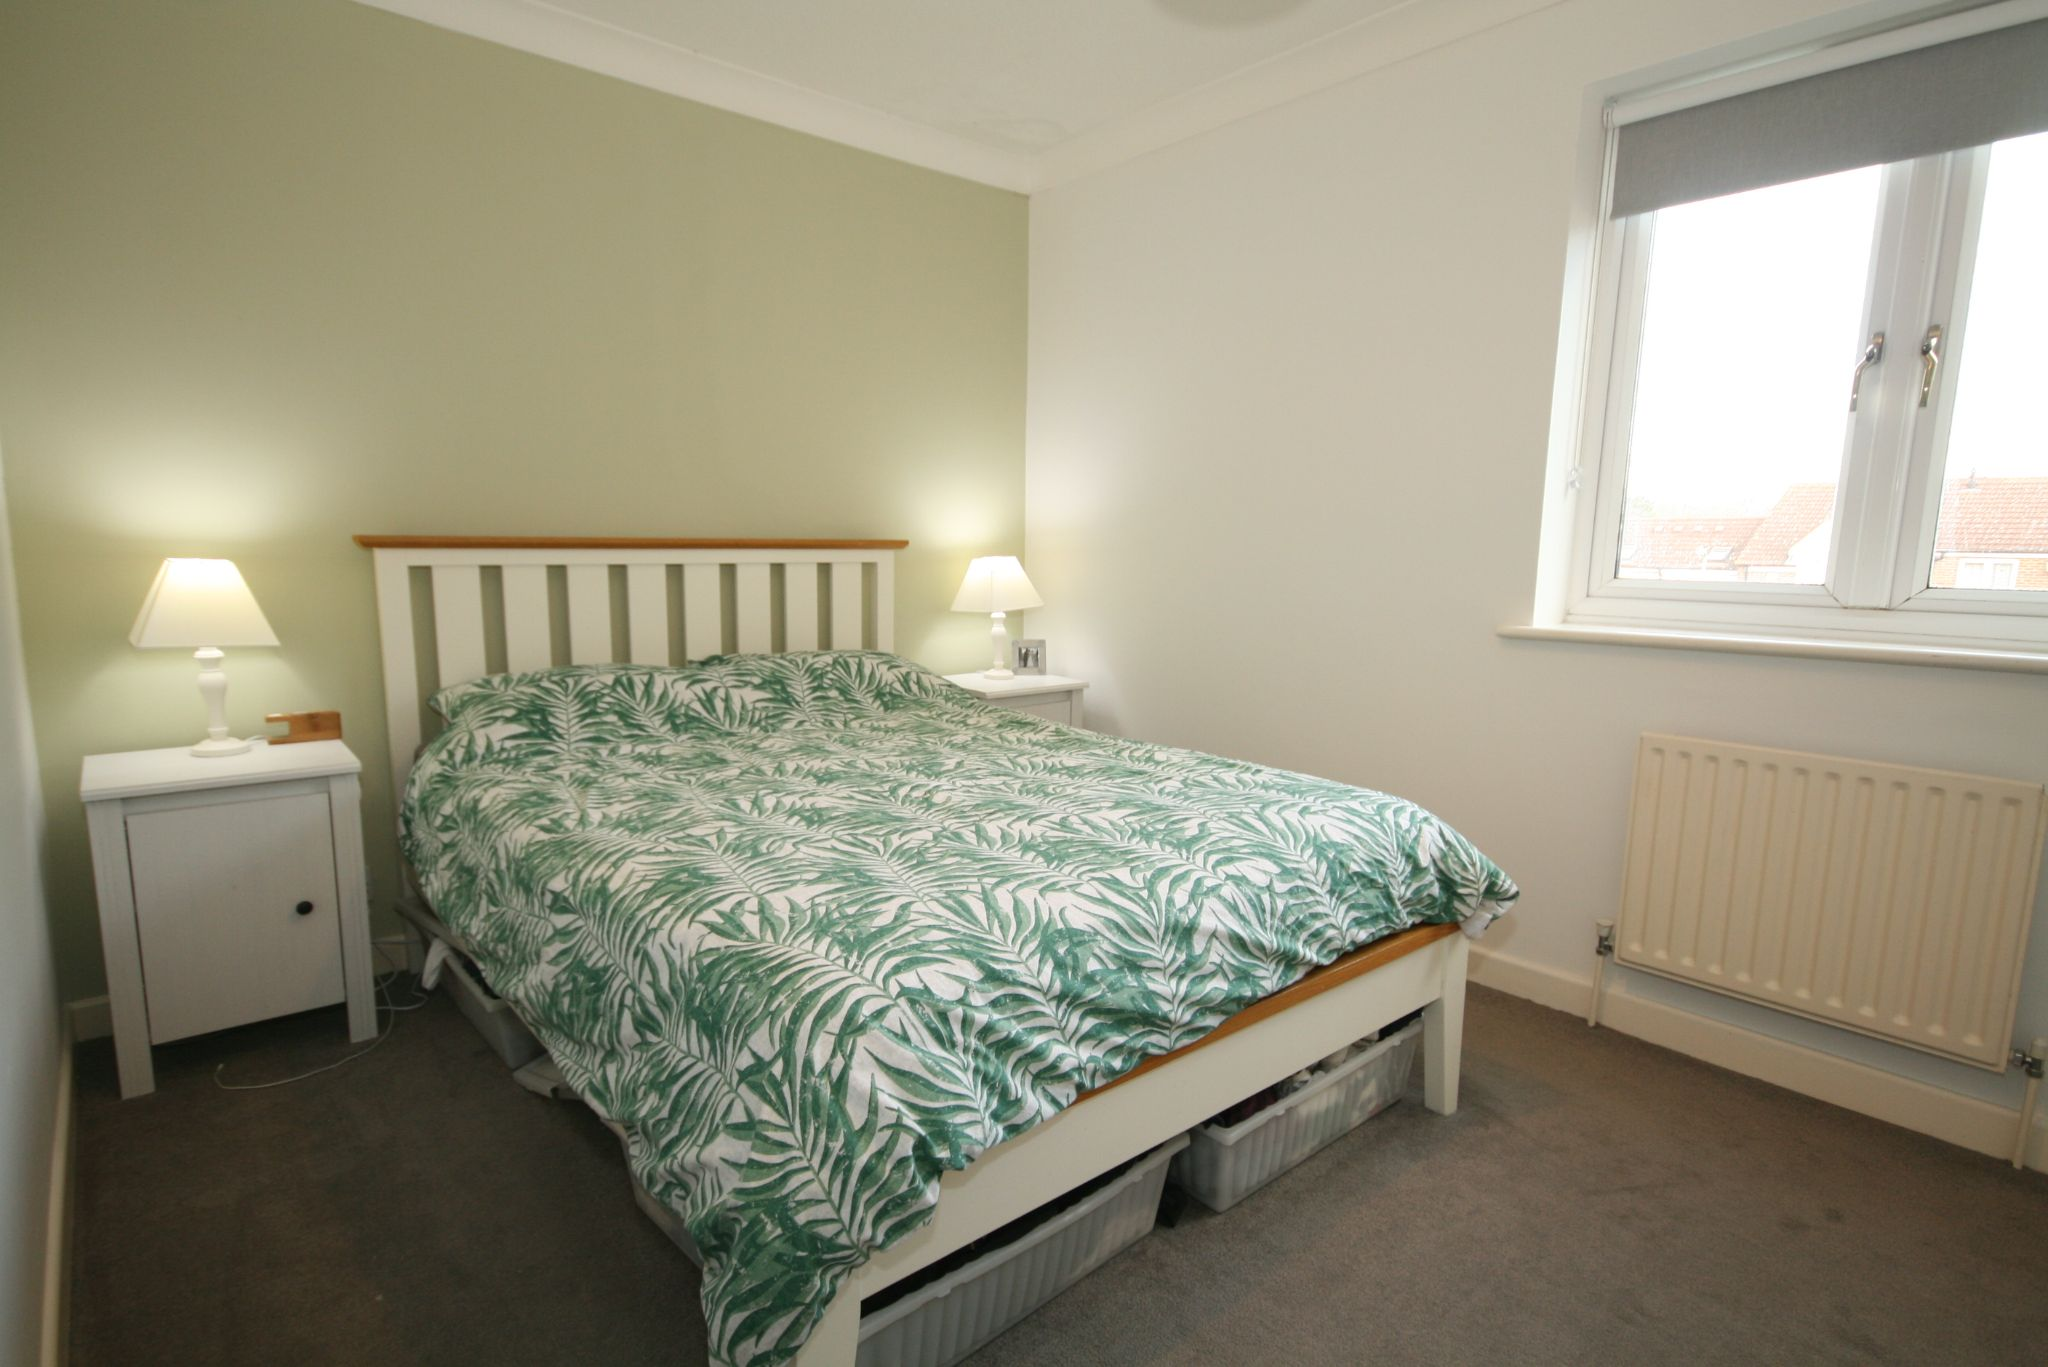 3 Bedroom End Terraced House For Sale - Bedroom 1